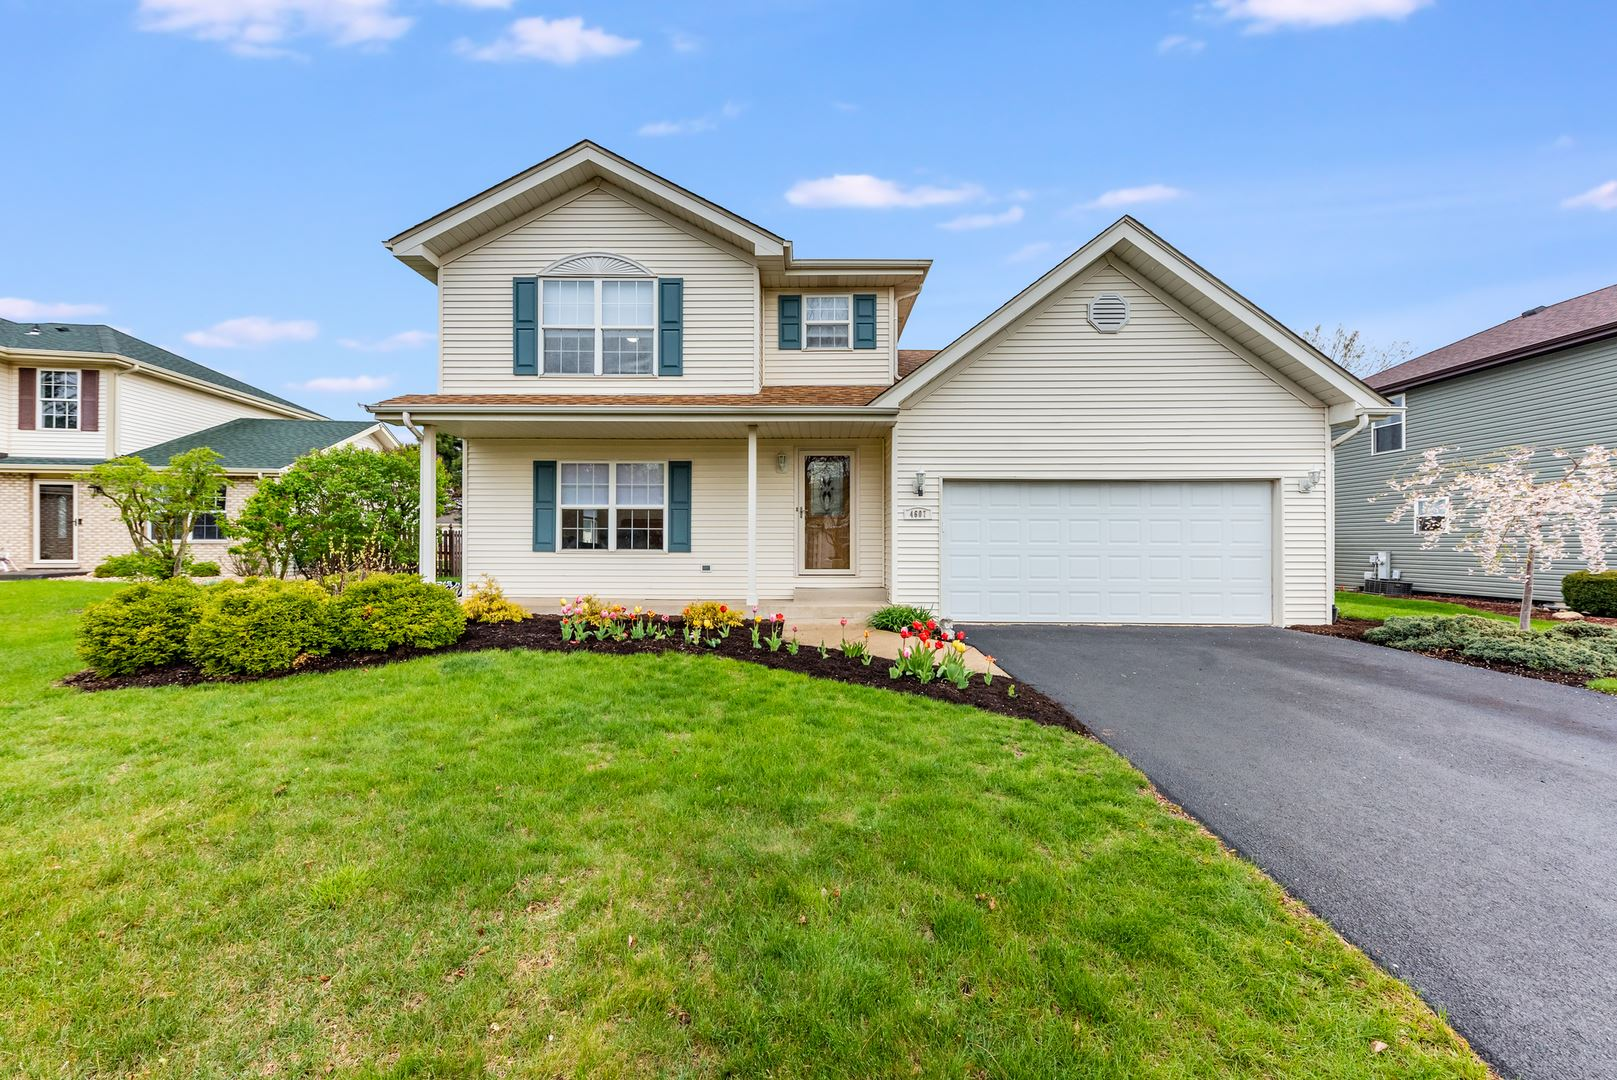 Photo of 4607 Peacock Lane, Plainfield, IL 60586 (MLS # 11061940)